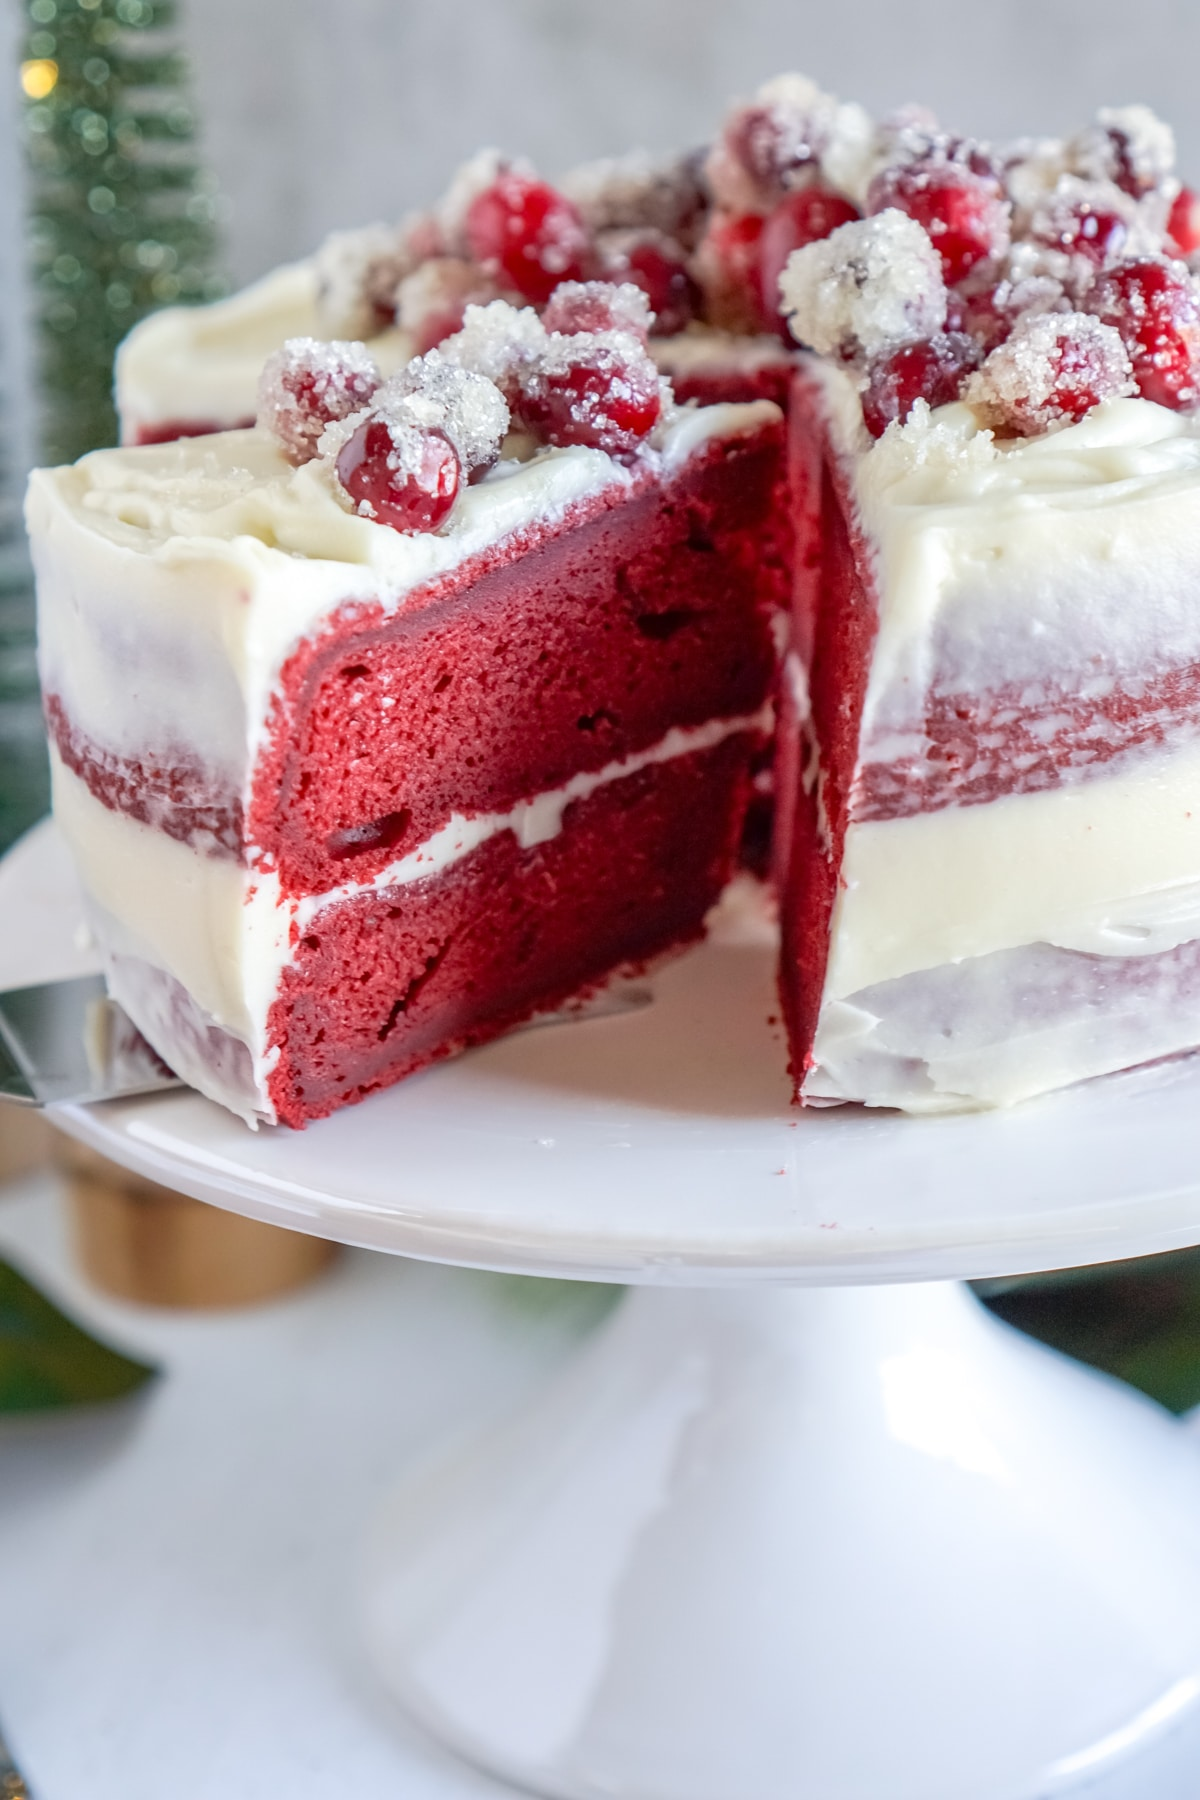 red velvet cake with a small slice cut out